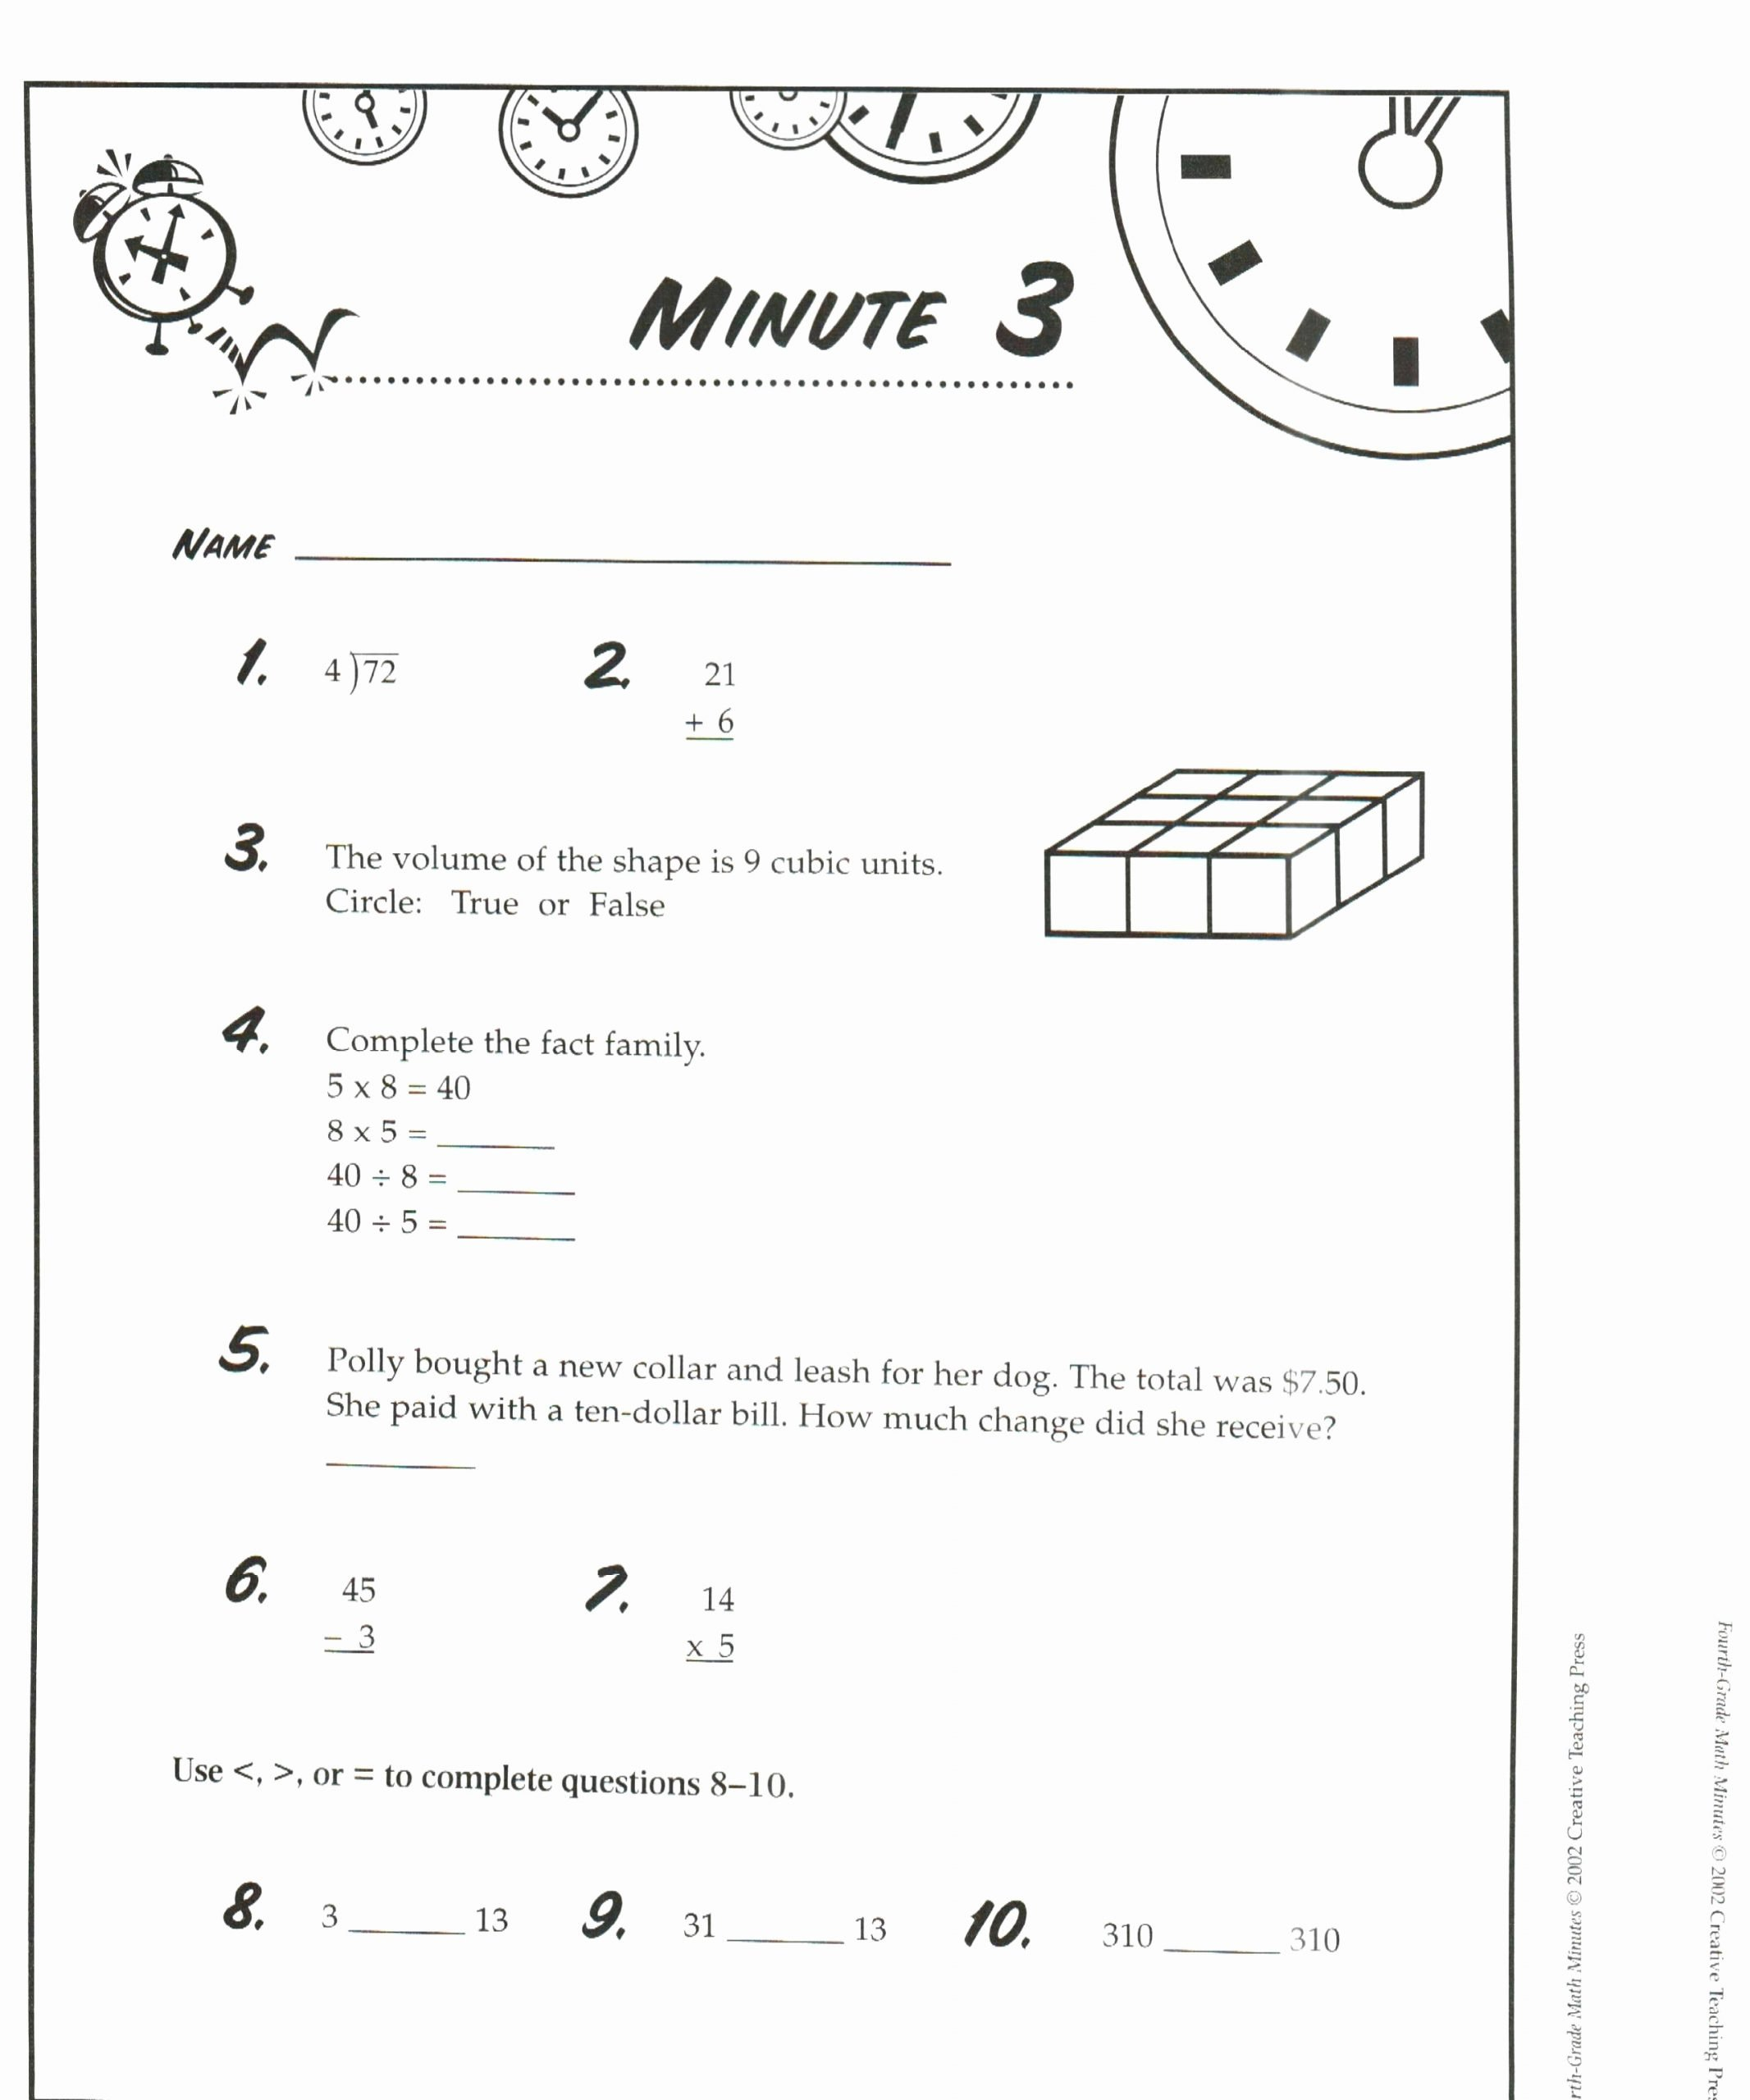 Envision Math 4th Grade Worksheets Lovely Envision Math 6th Grade Worksheets